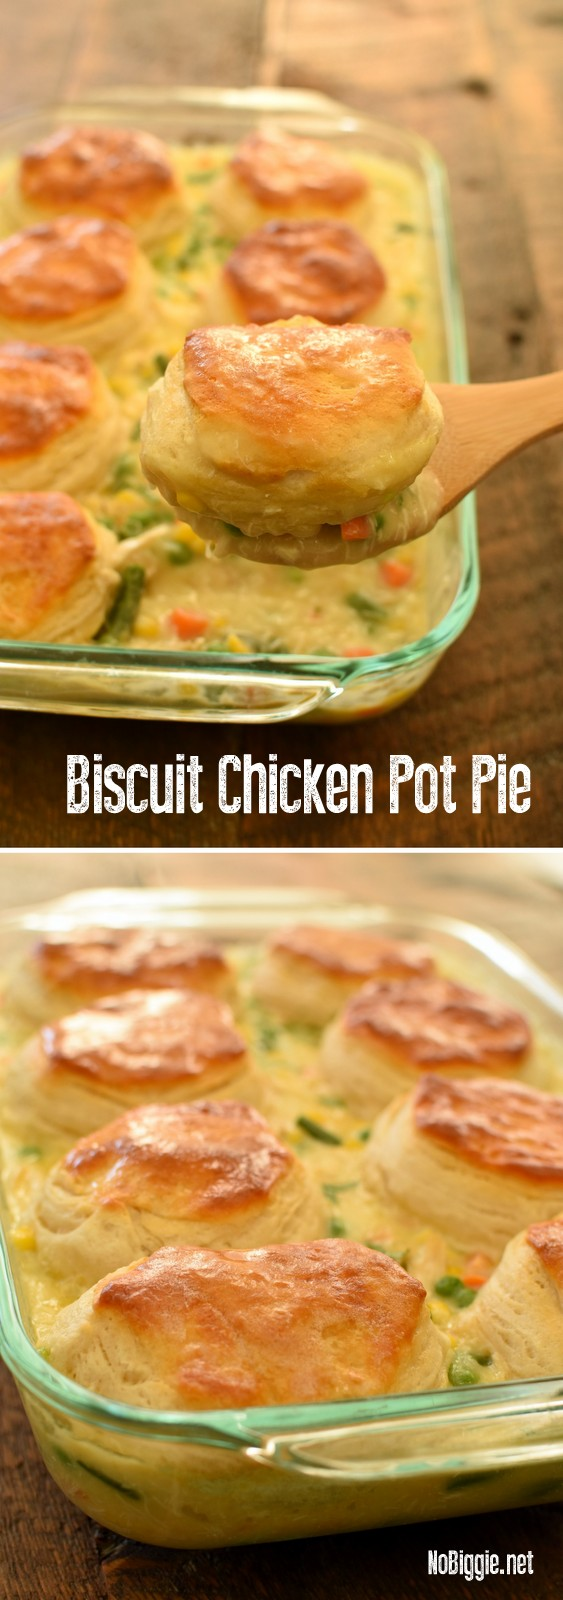 Biscuit Chicken Pot Pie is such an easy dinner the whole family will love. #chickenpotpie #biscuitchickenpotpie #potpie #chickenrecipes #chicken #easydinners